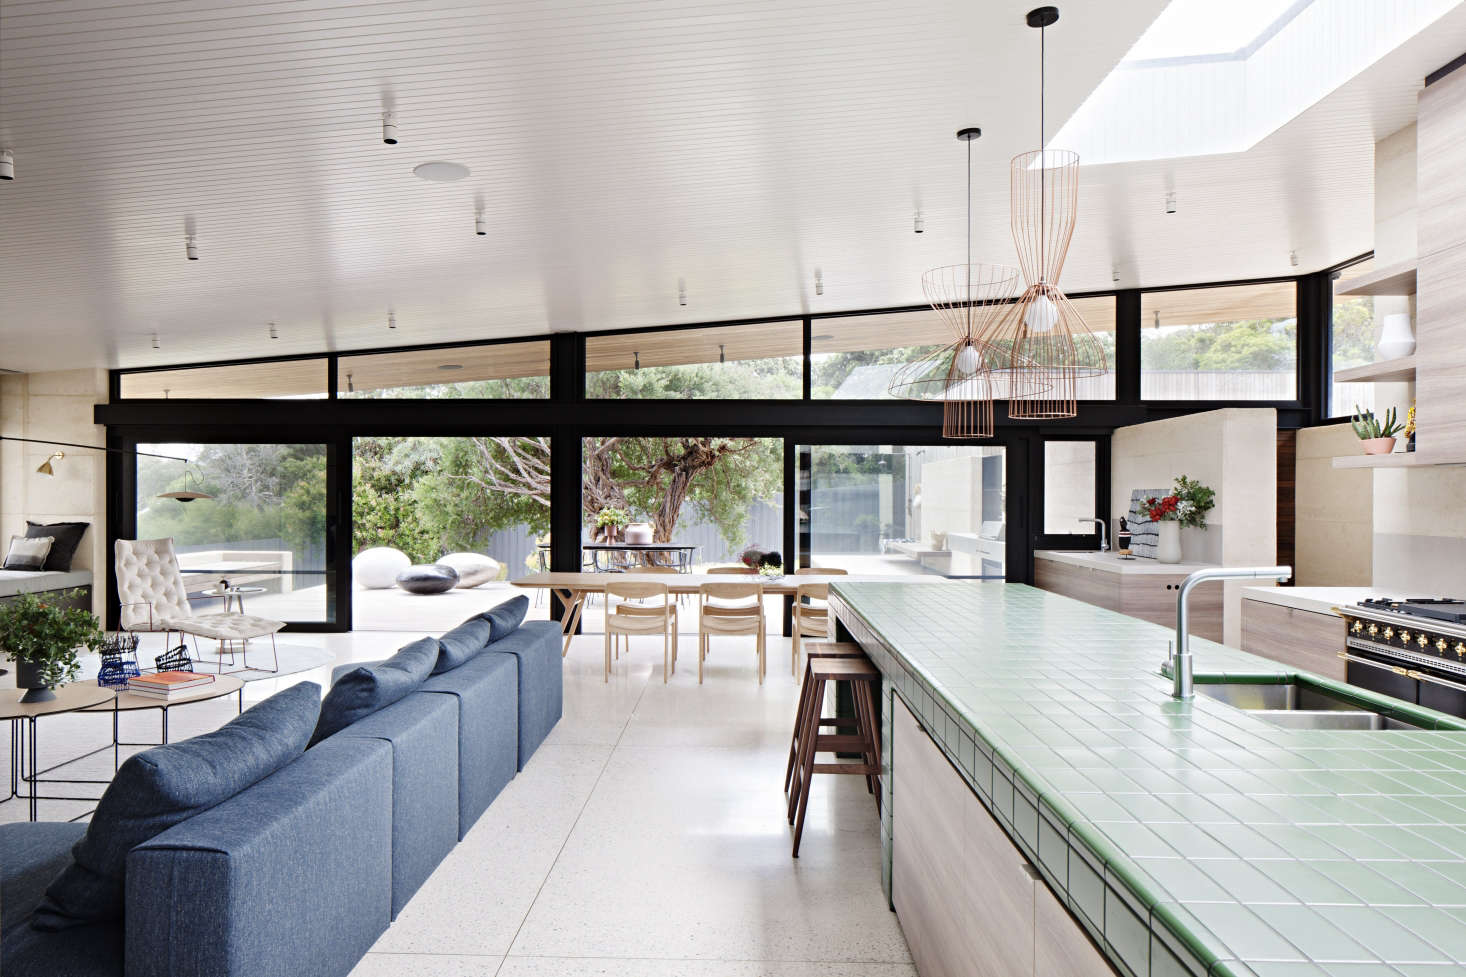 Designed as a gathering place for a multigenerational family and their many guests, the house revolves around a central living/dining/cooking area with a clean-lined, organic-modern look.